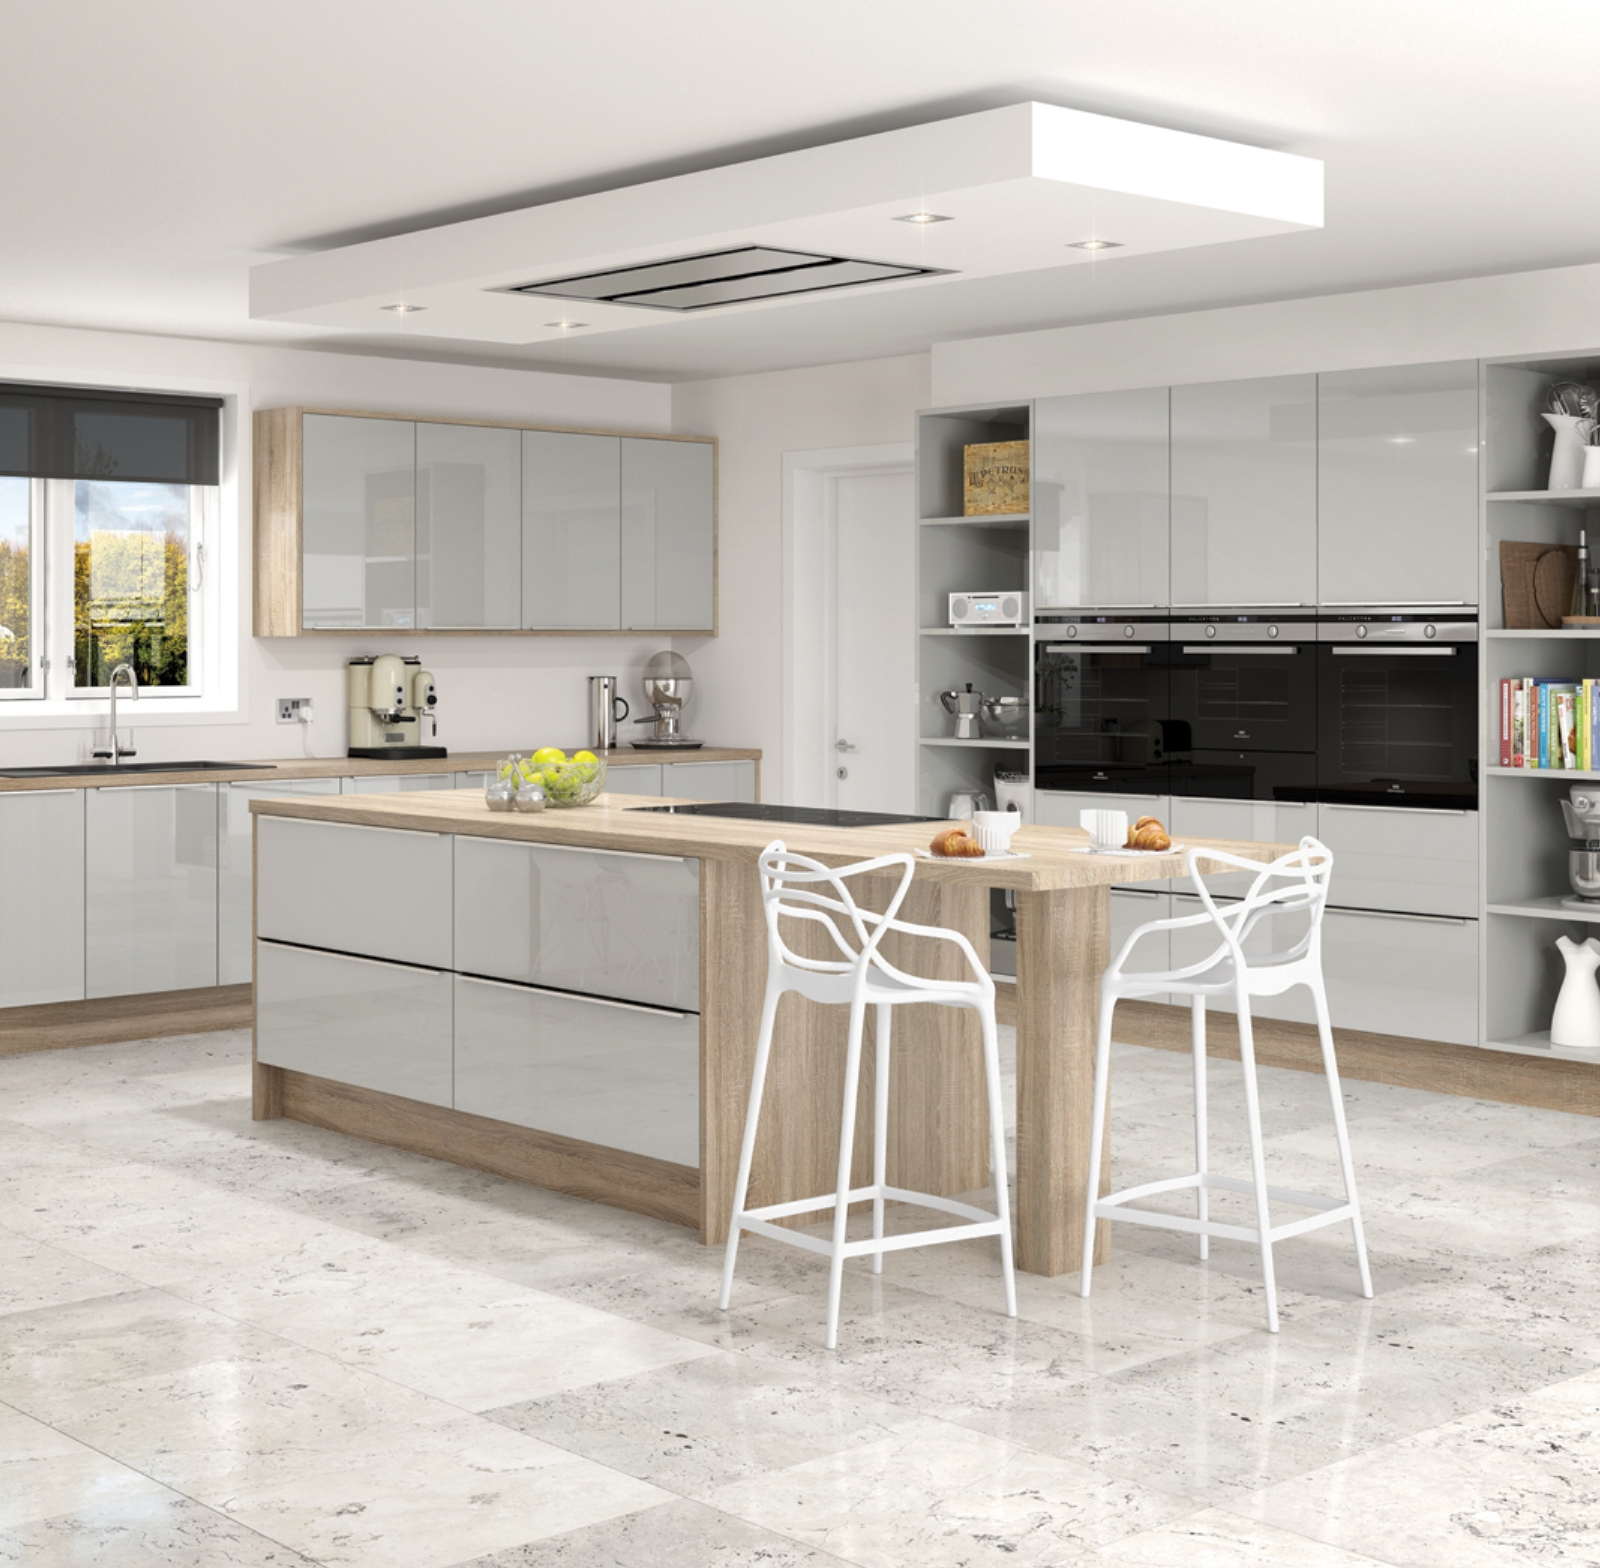 Mid range kitchens seamless interiors for Mid range kitchen cabinets